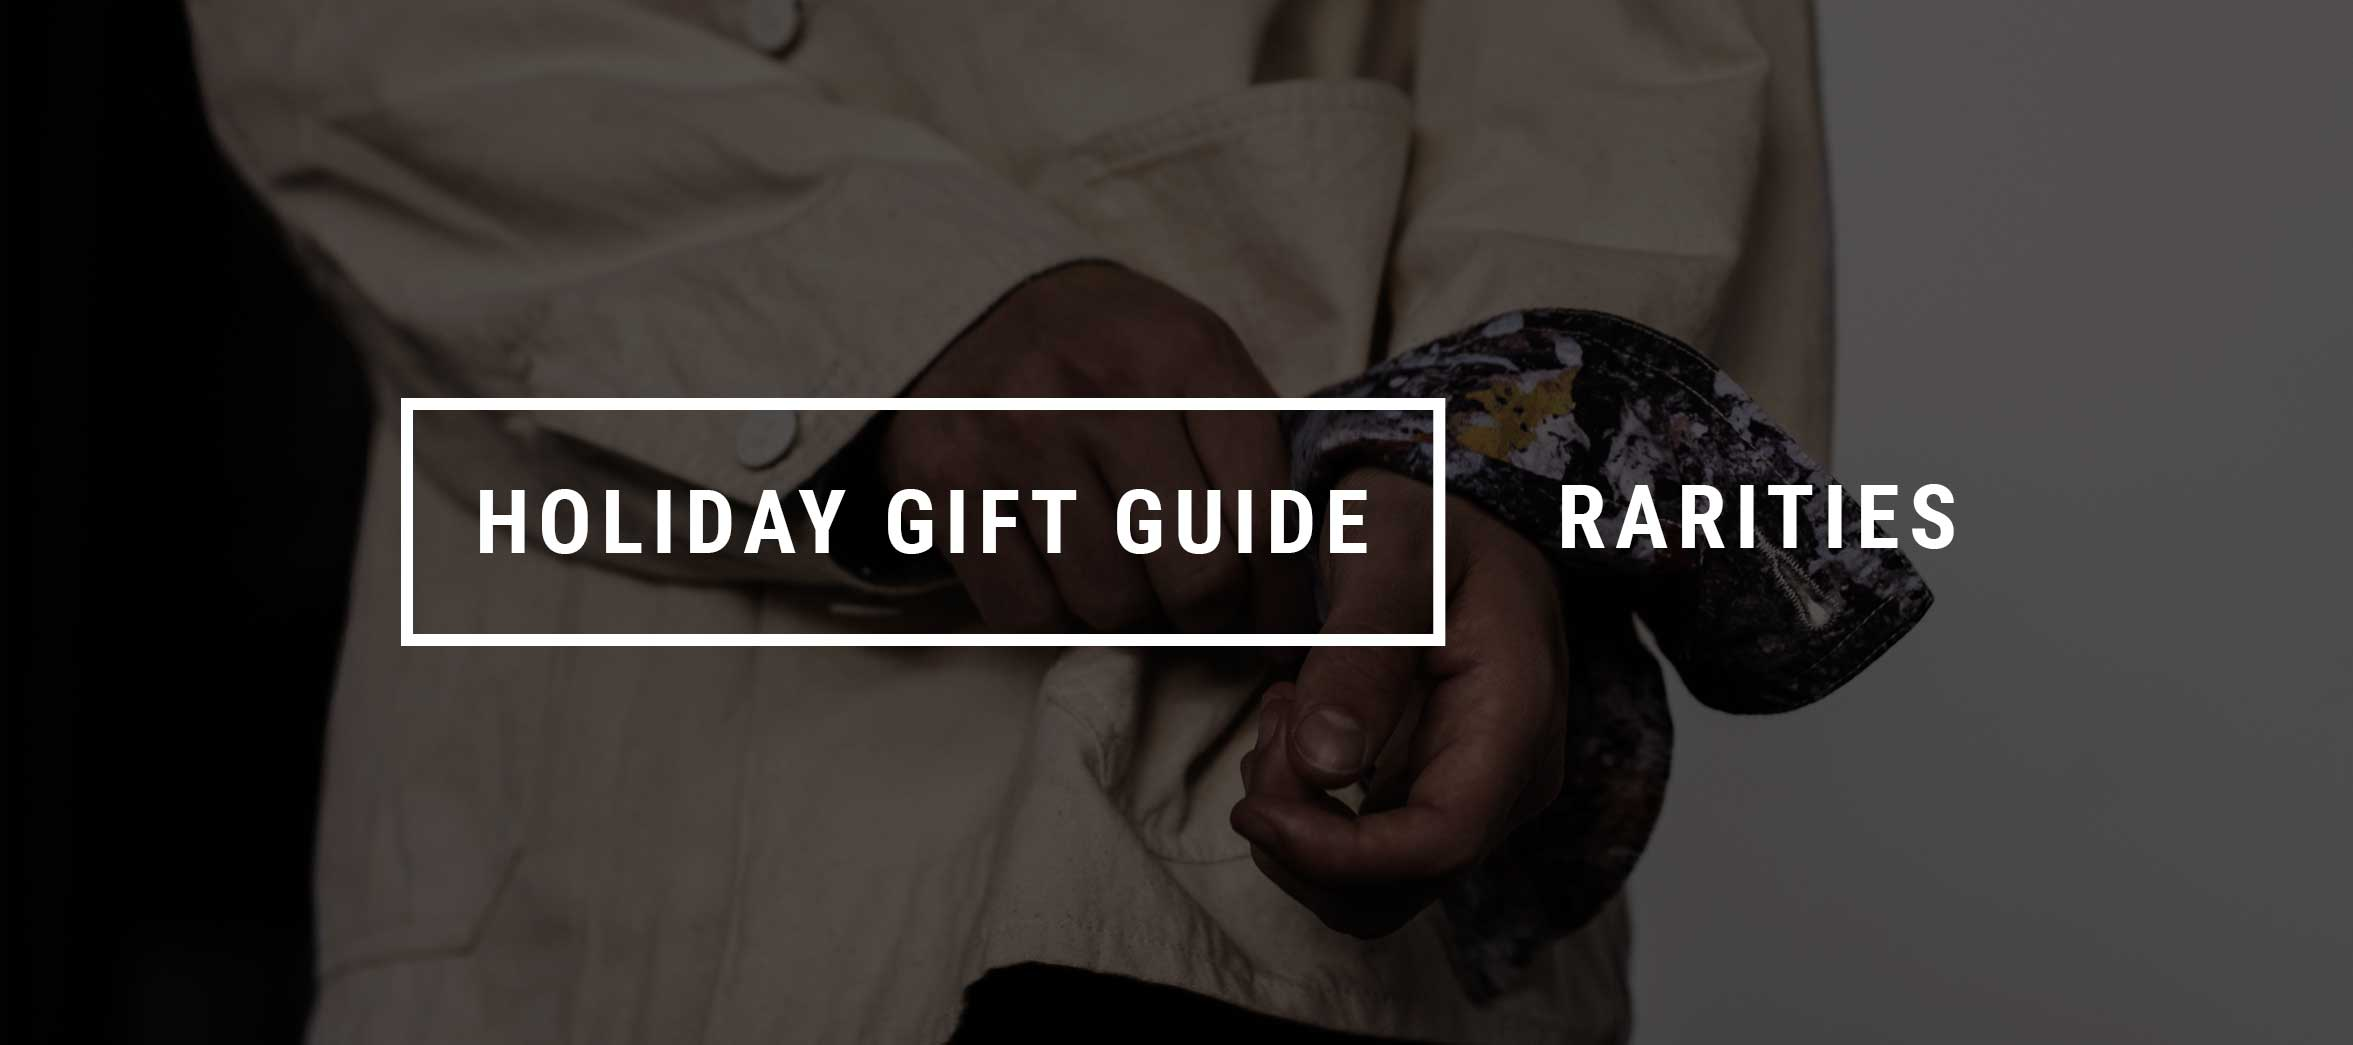 Gift Guide - Rarities